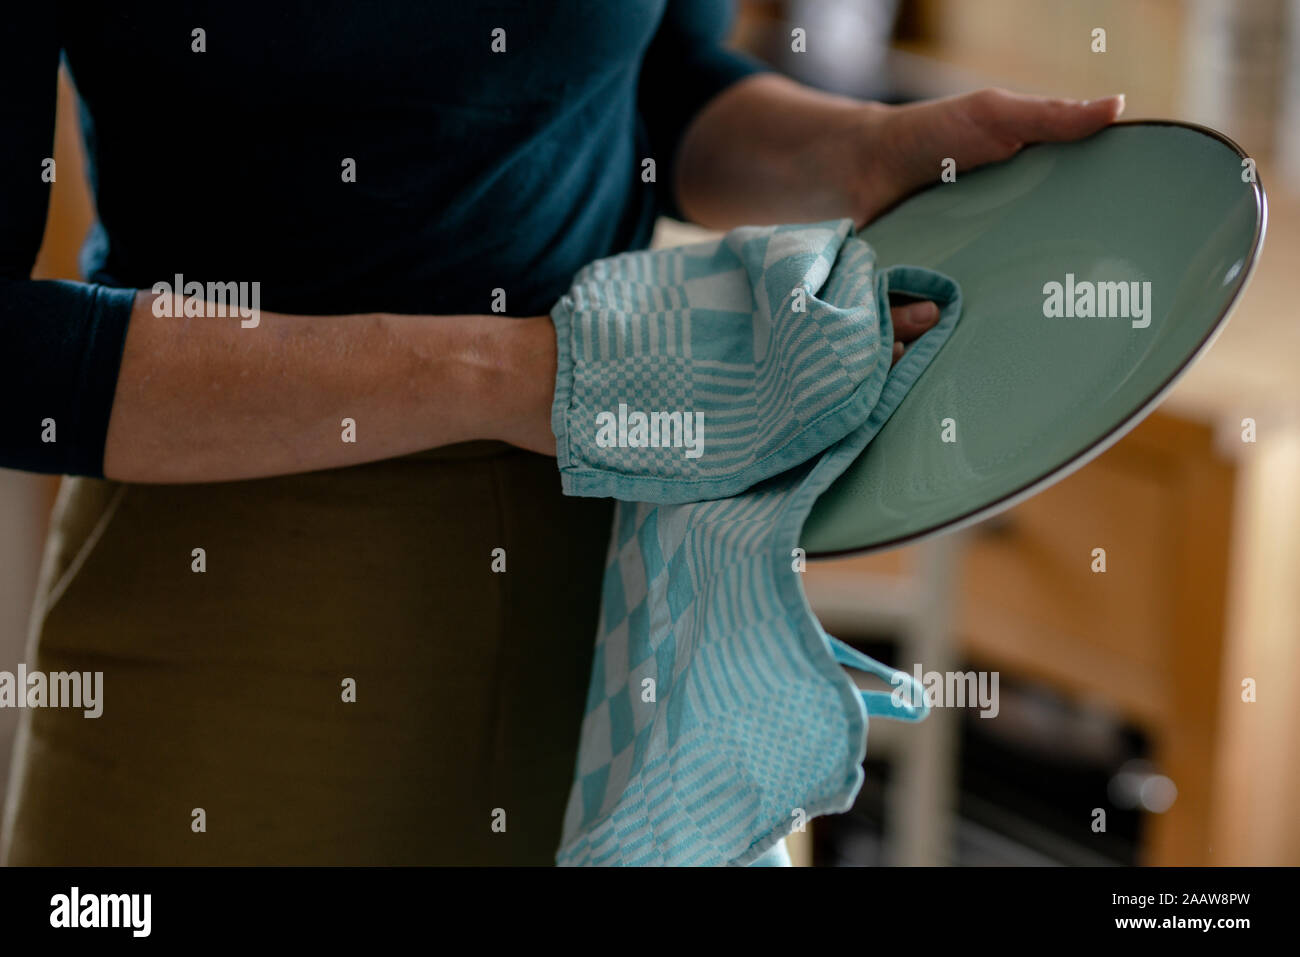 Woman drying plate with dish towel, close-up Stock Photo